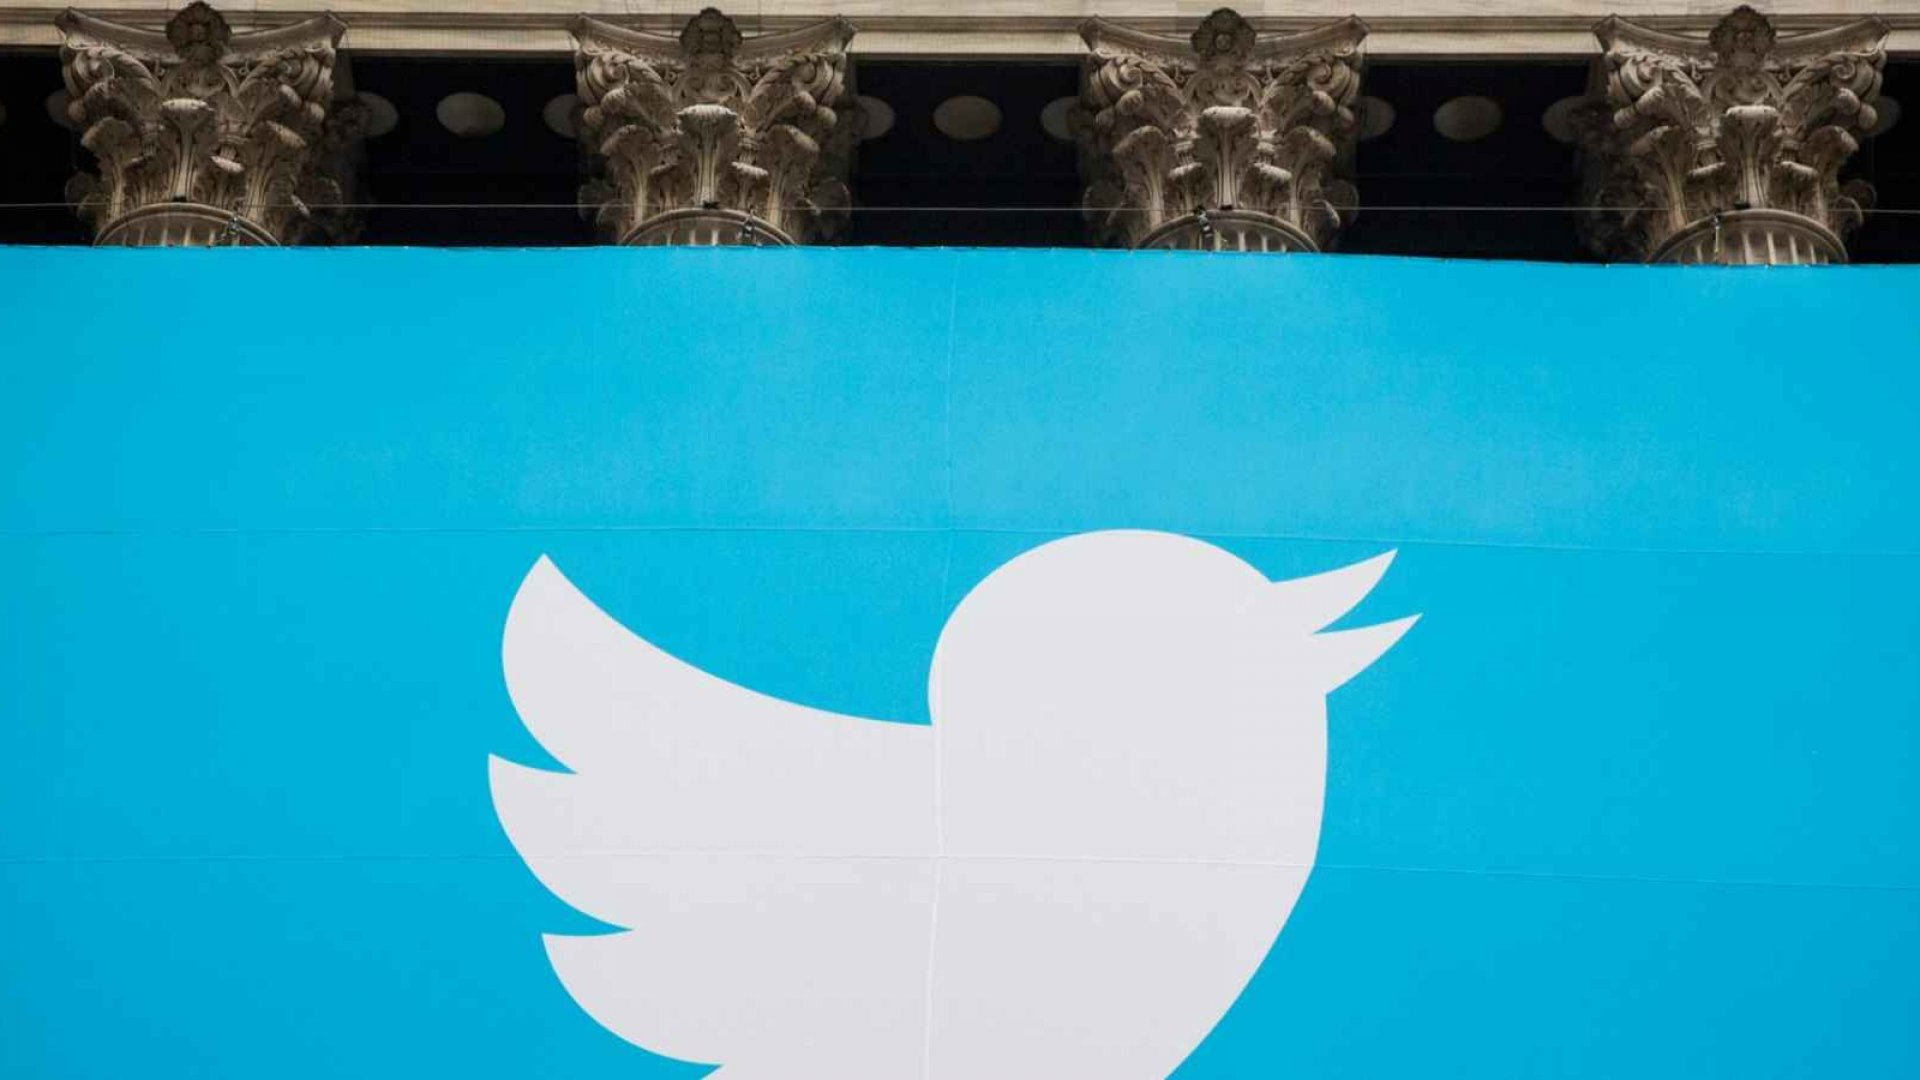 Twitter's SoundCloud Investment Raises Major Questions About Company's Direction